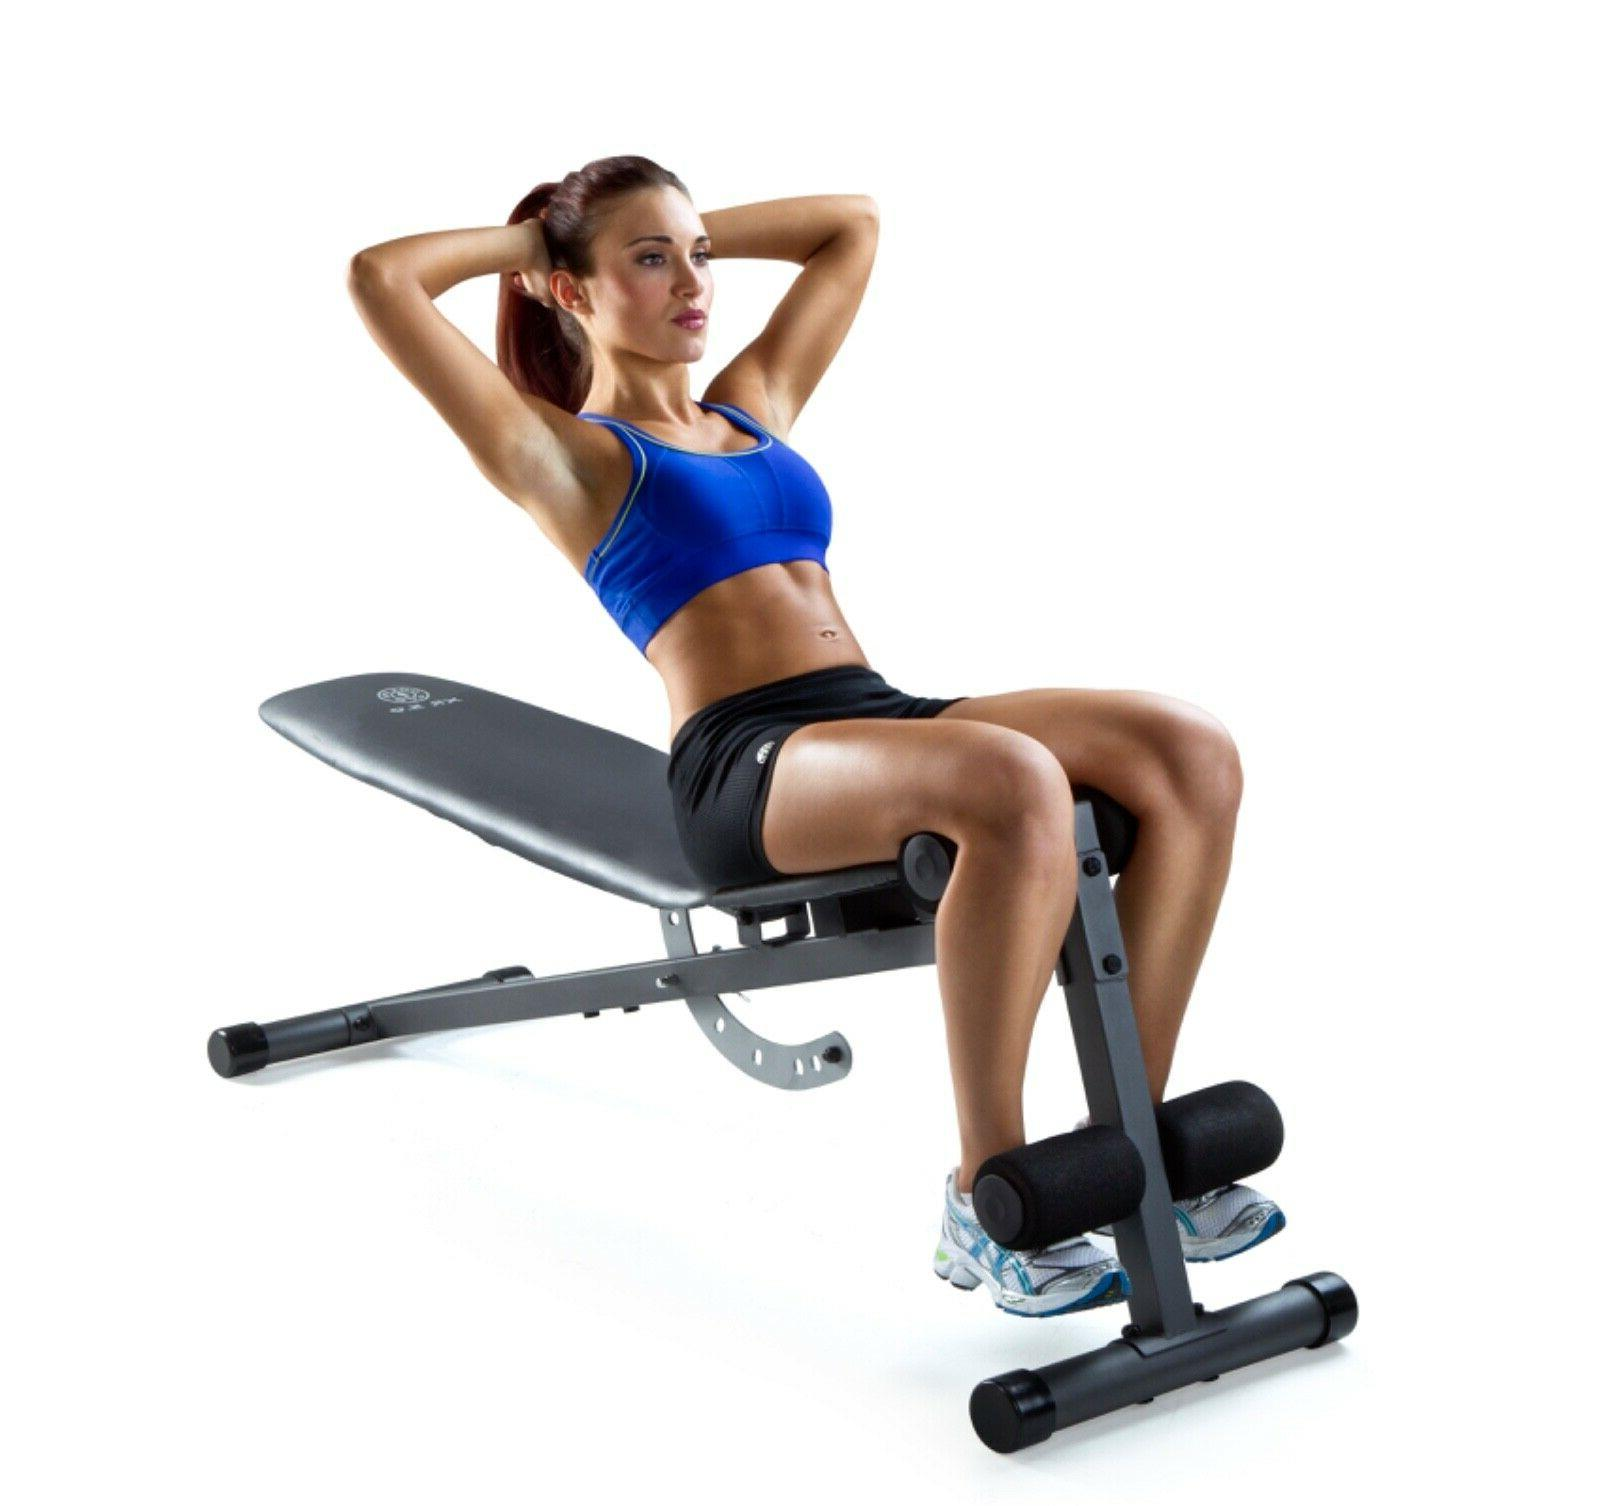 ADJUSTABLE WEIGHT Flat Incline Decline Exercise Workout Training